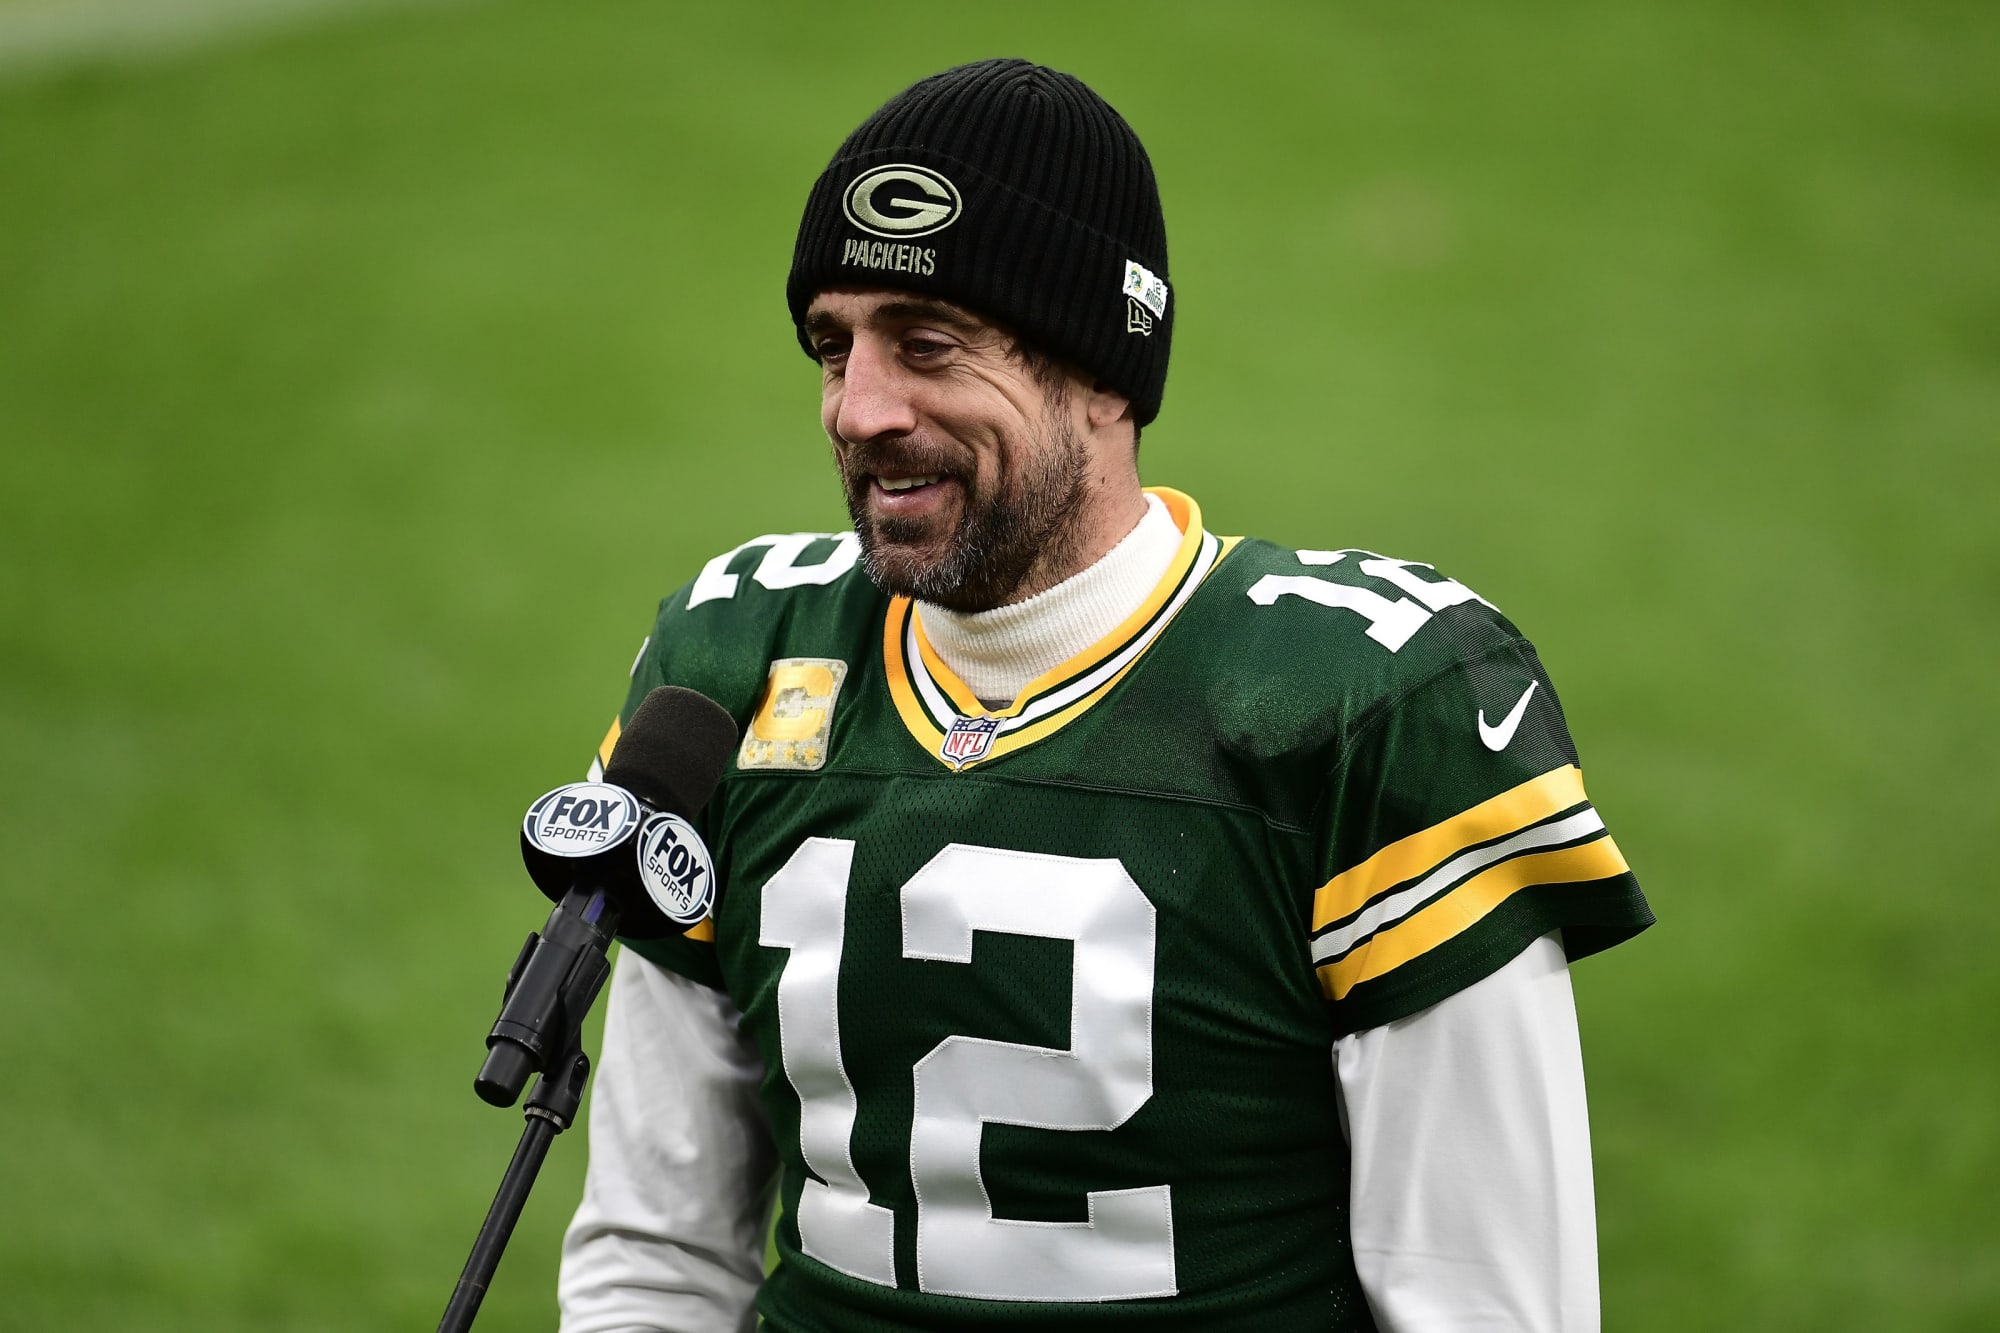 Aaron Rodgers' quote about the NFL Playoffs will pump up Packers fans